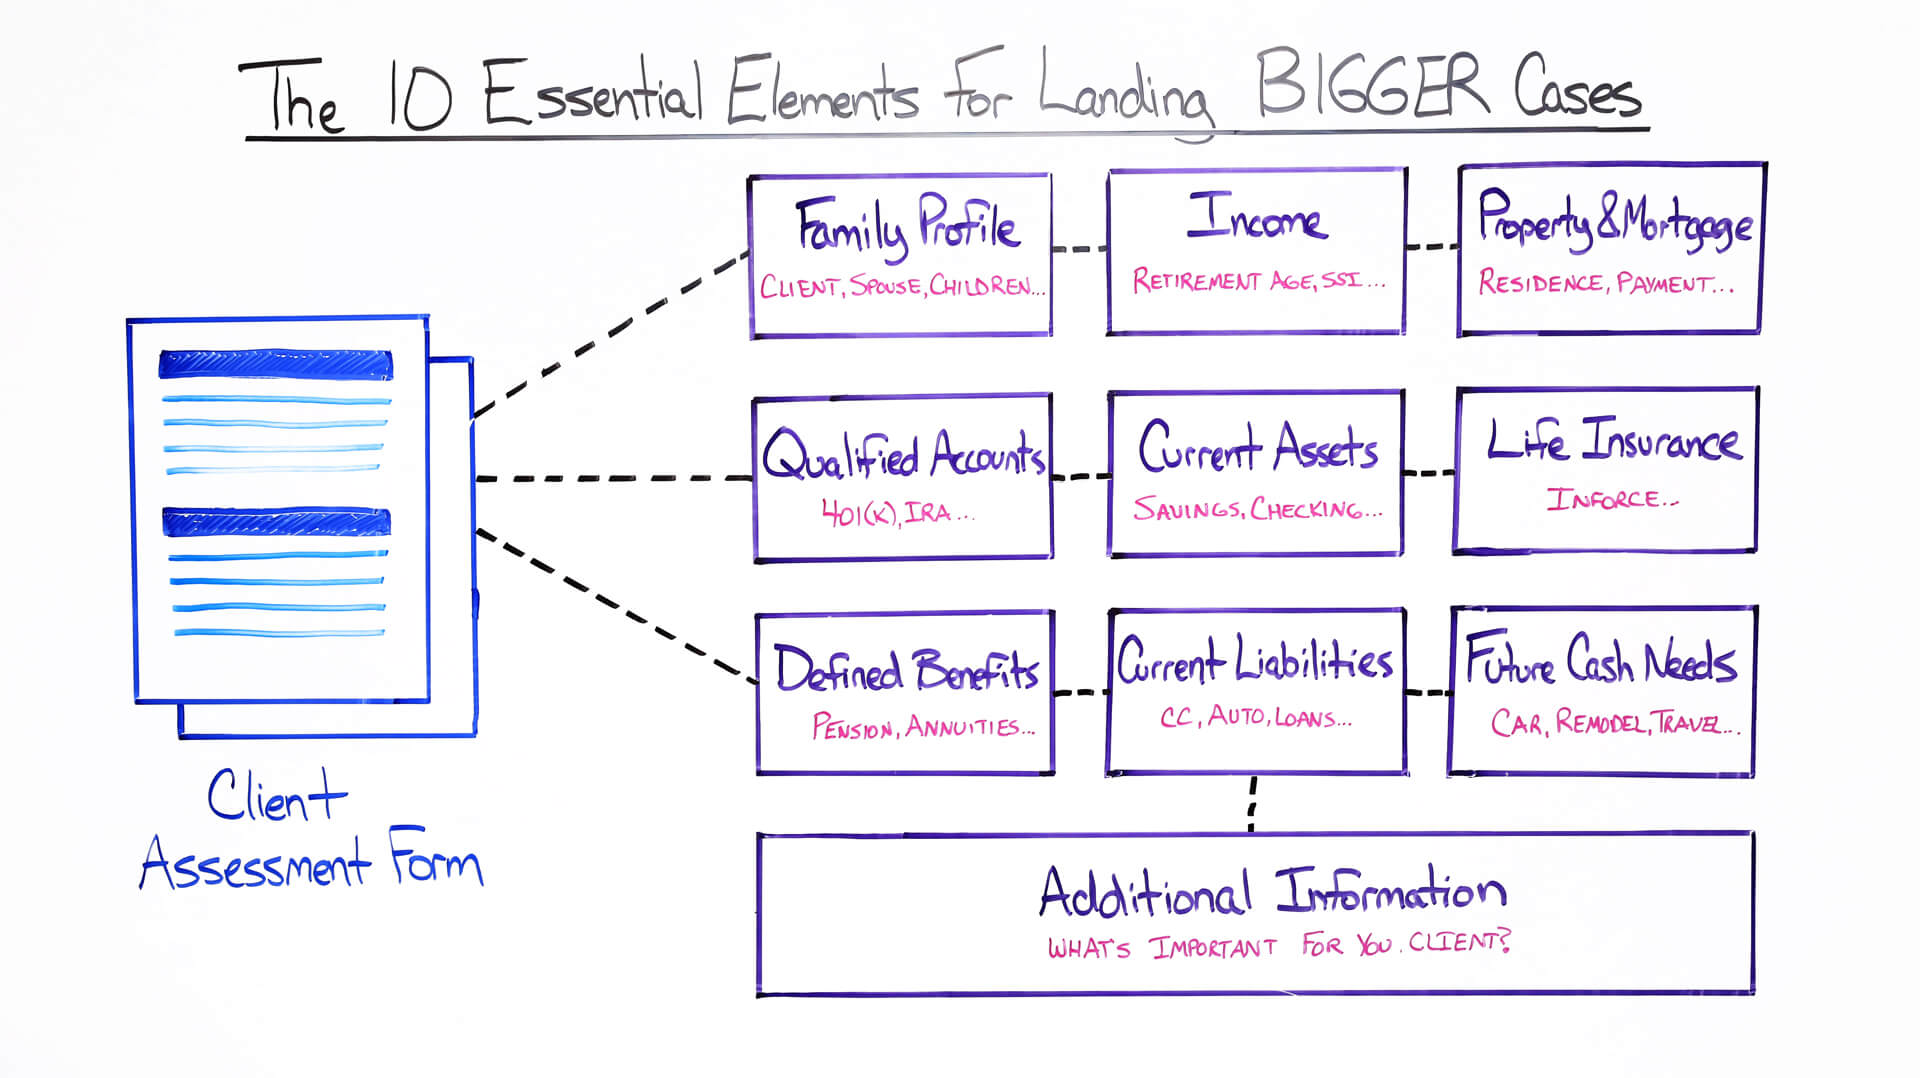 The 10 Essential Elements for Landing BIGGER Cases